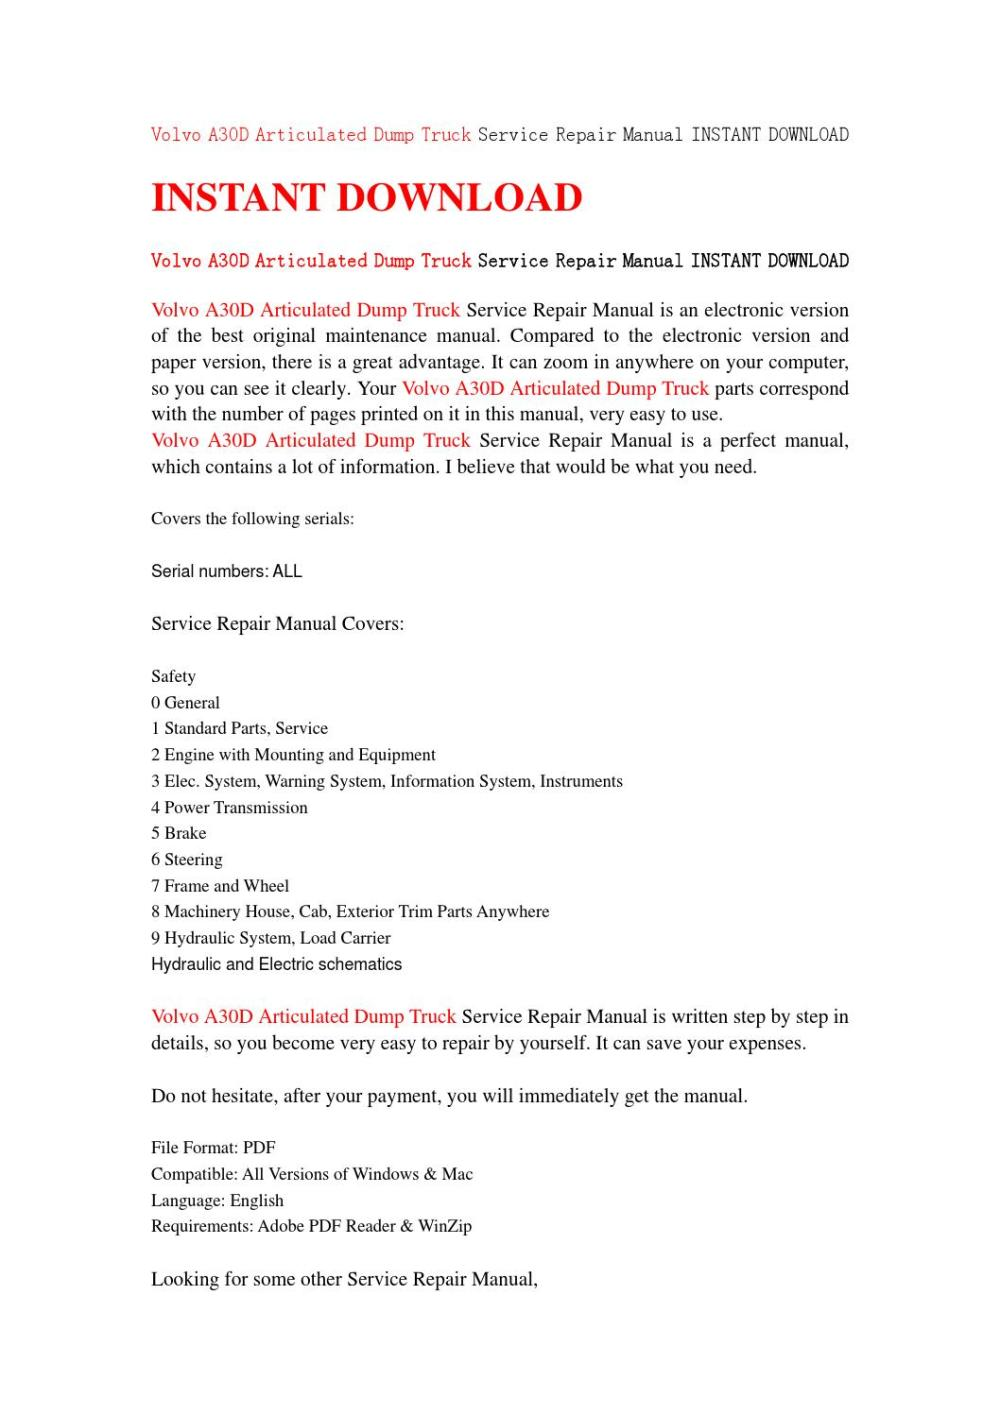 medium resolution of volvo a30d articulated dump truck service repair manual instant download by jfhsefjse issuu